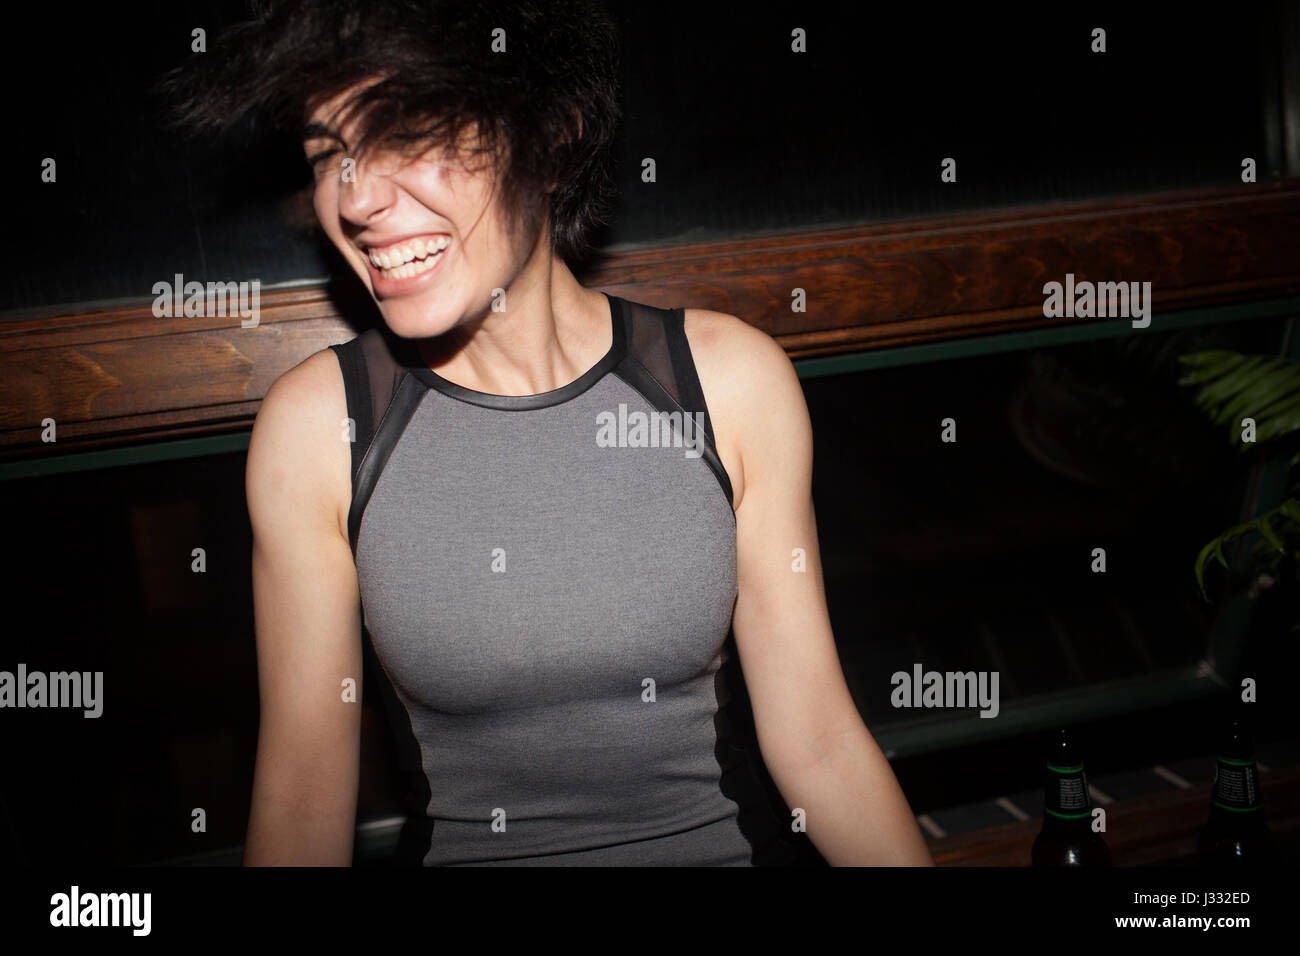 Happy young woman having fun at a party - Stock Image